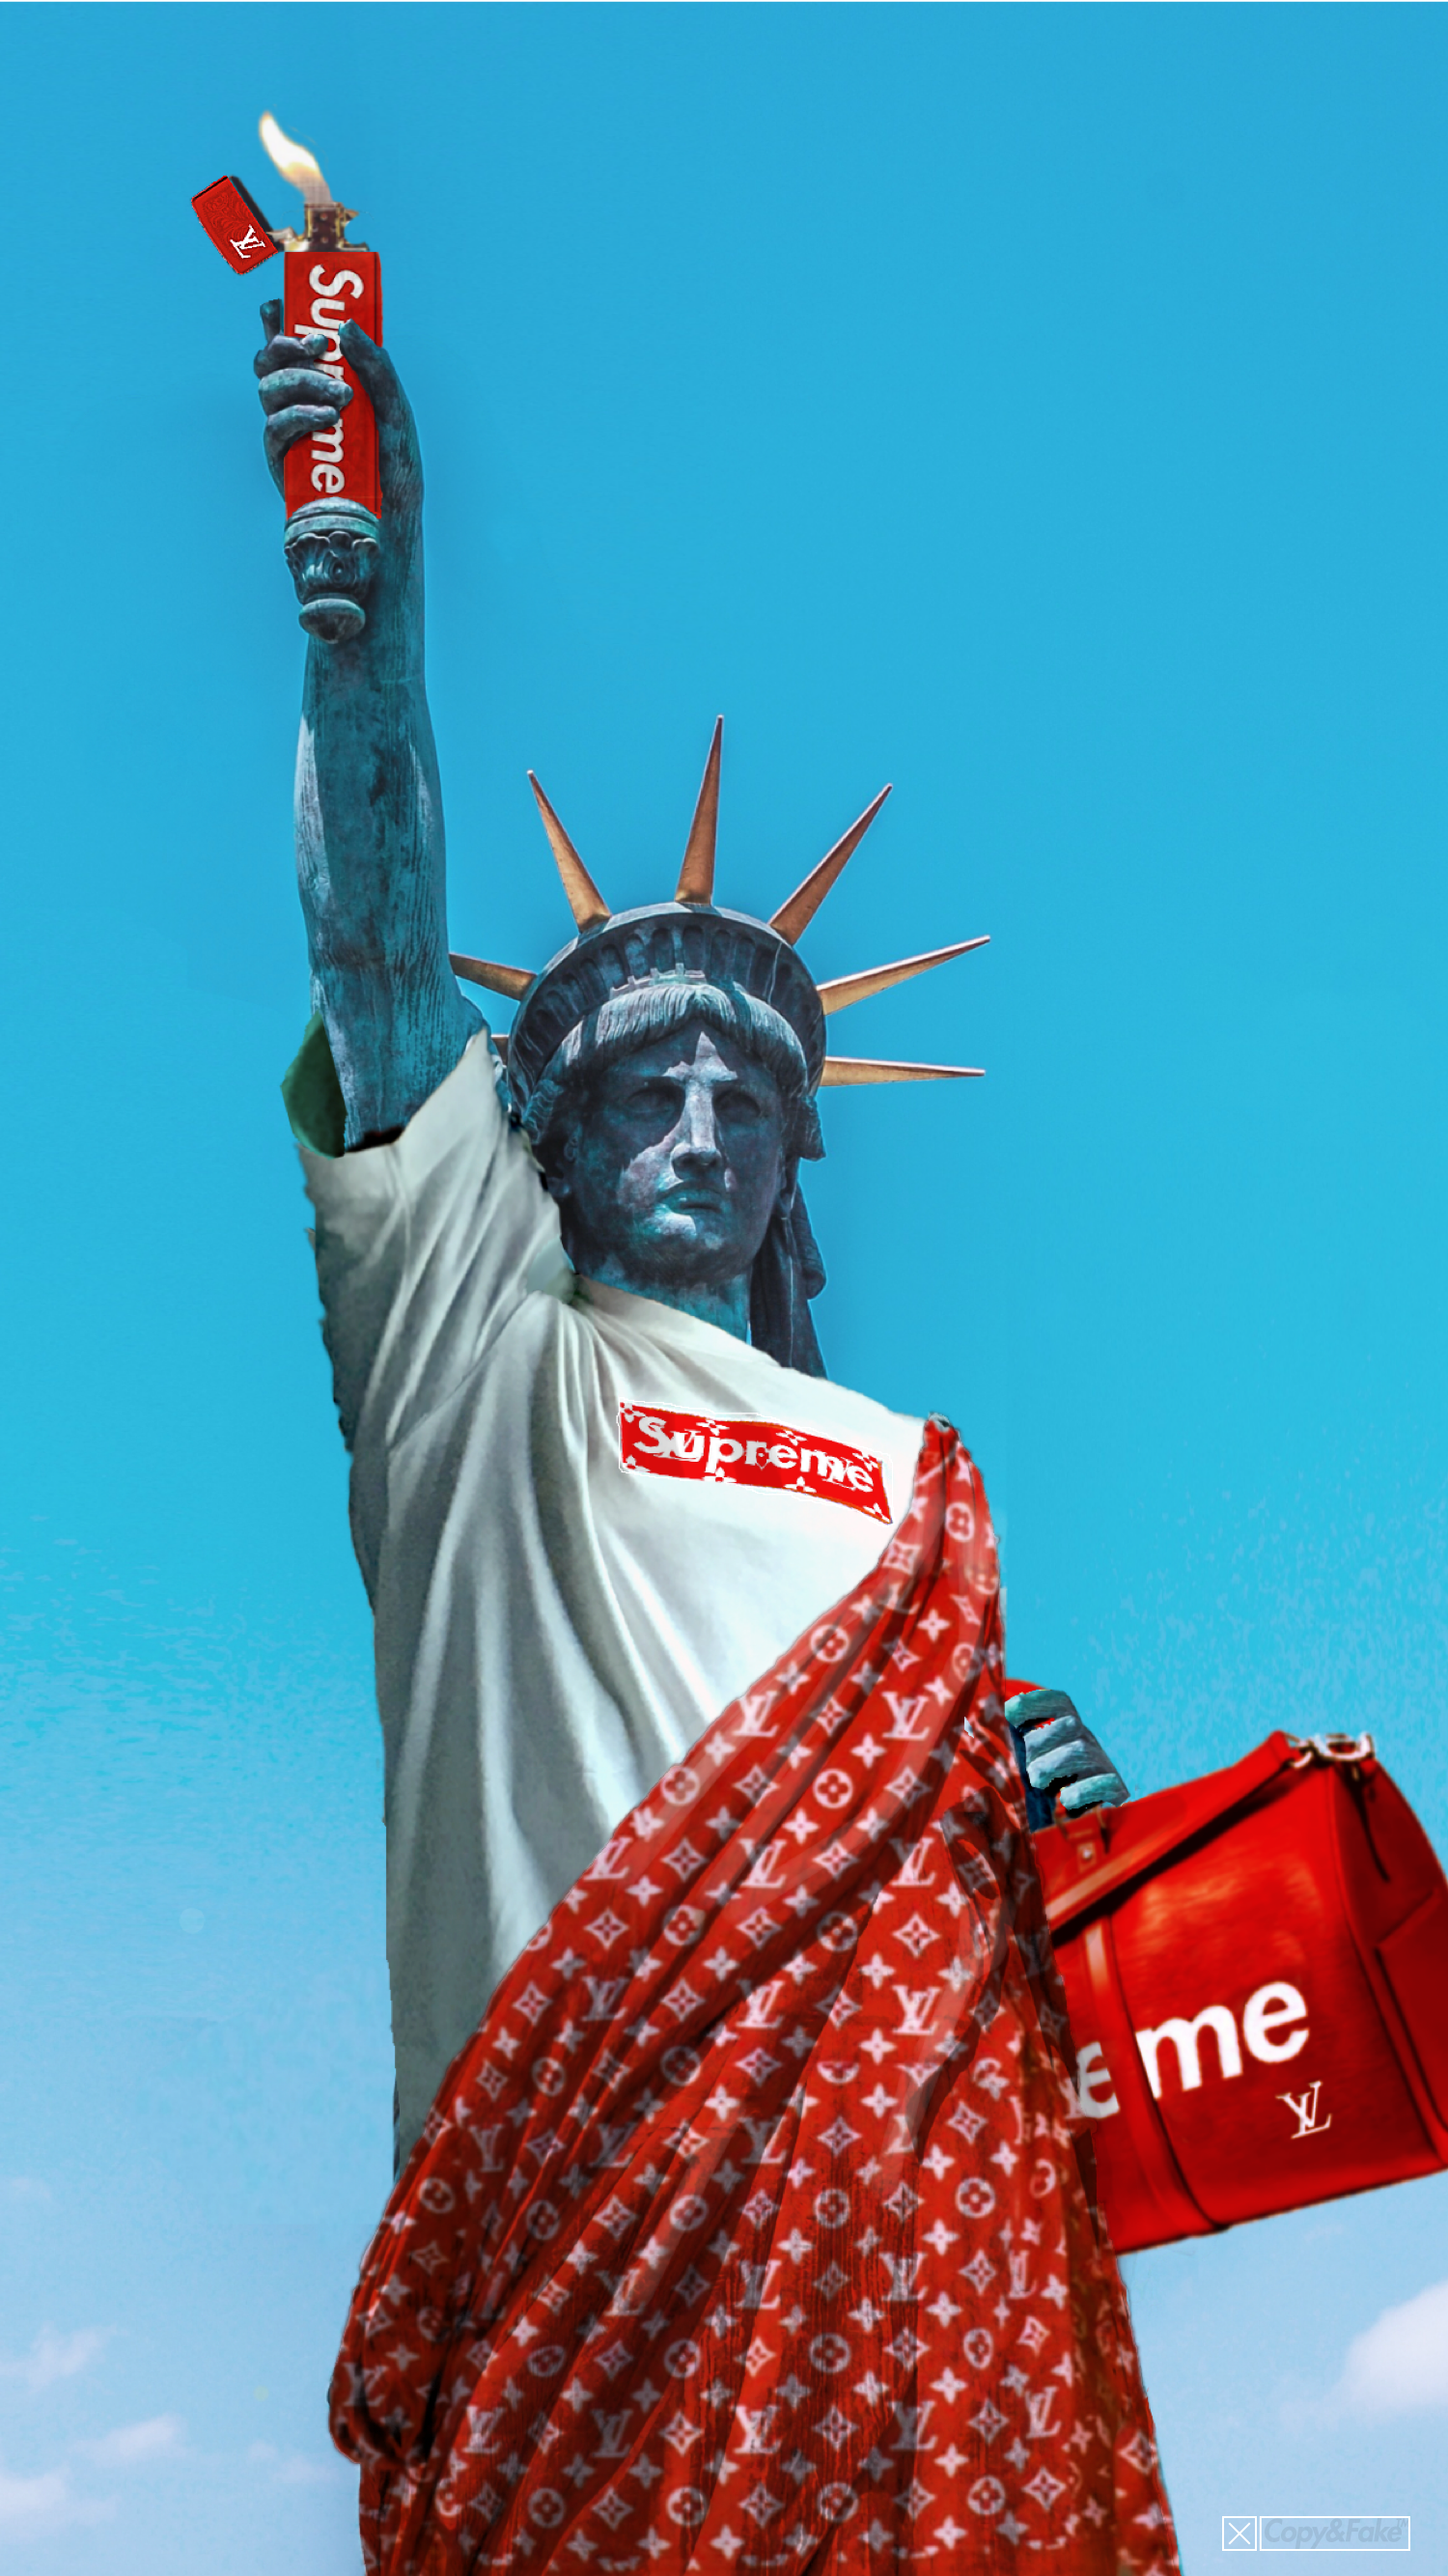 Supreme X Lv Collaboration Memorial The Statue Of Liberty Is A